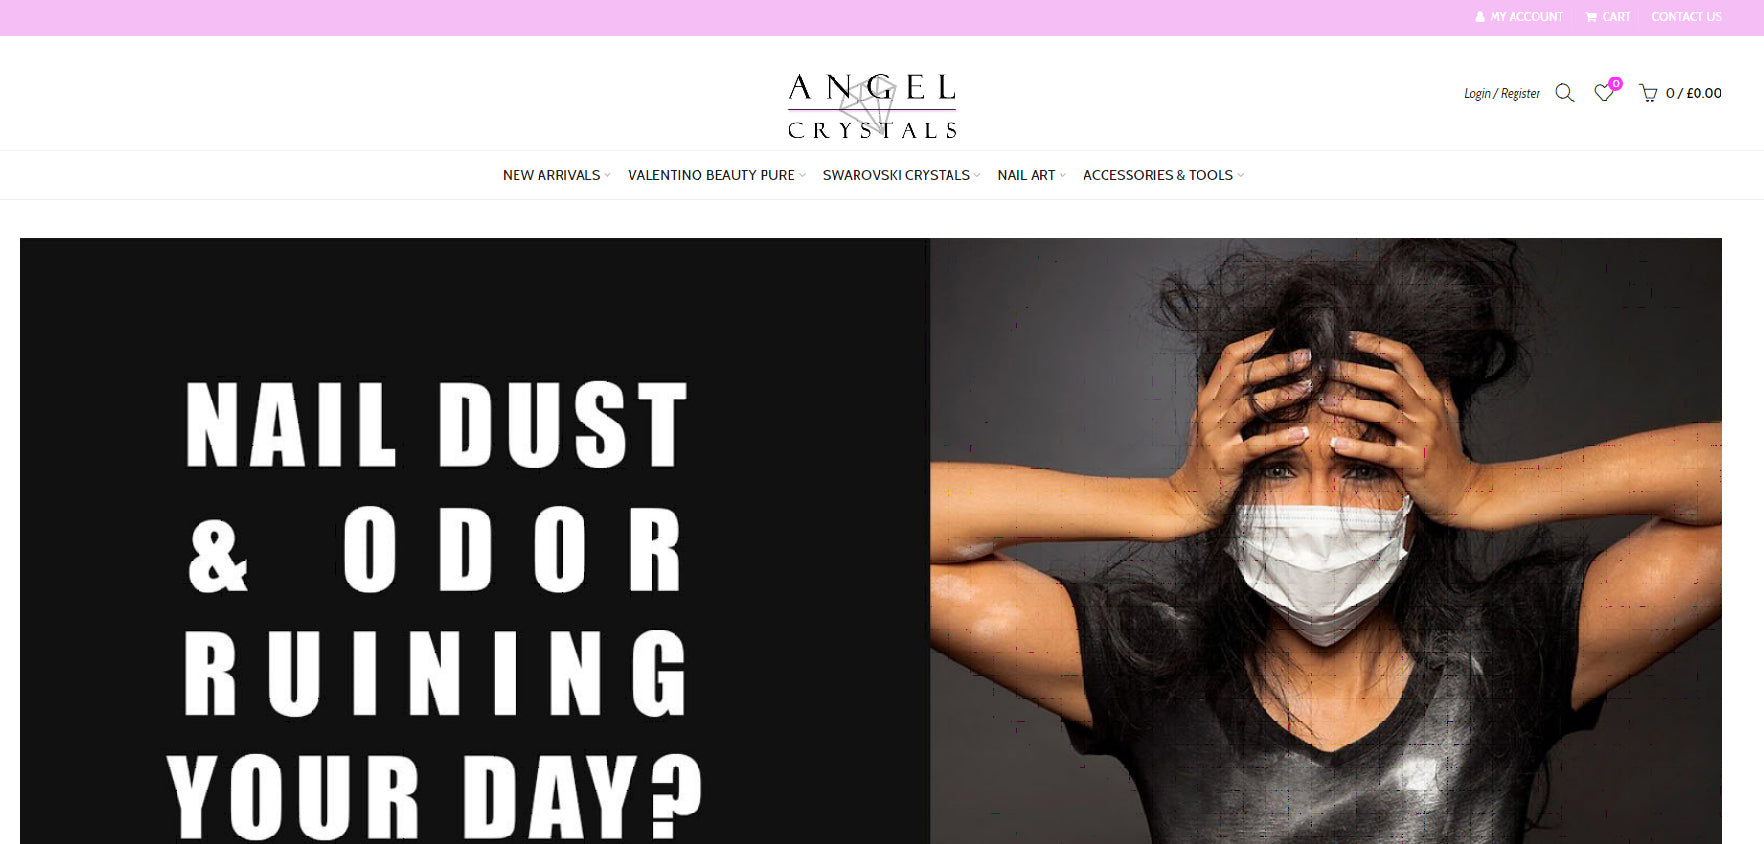 Welcome to the new Angel Crystals website